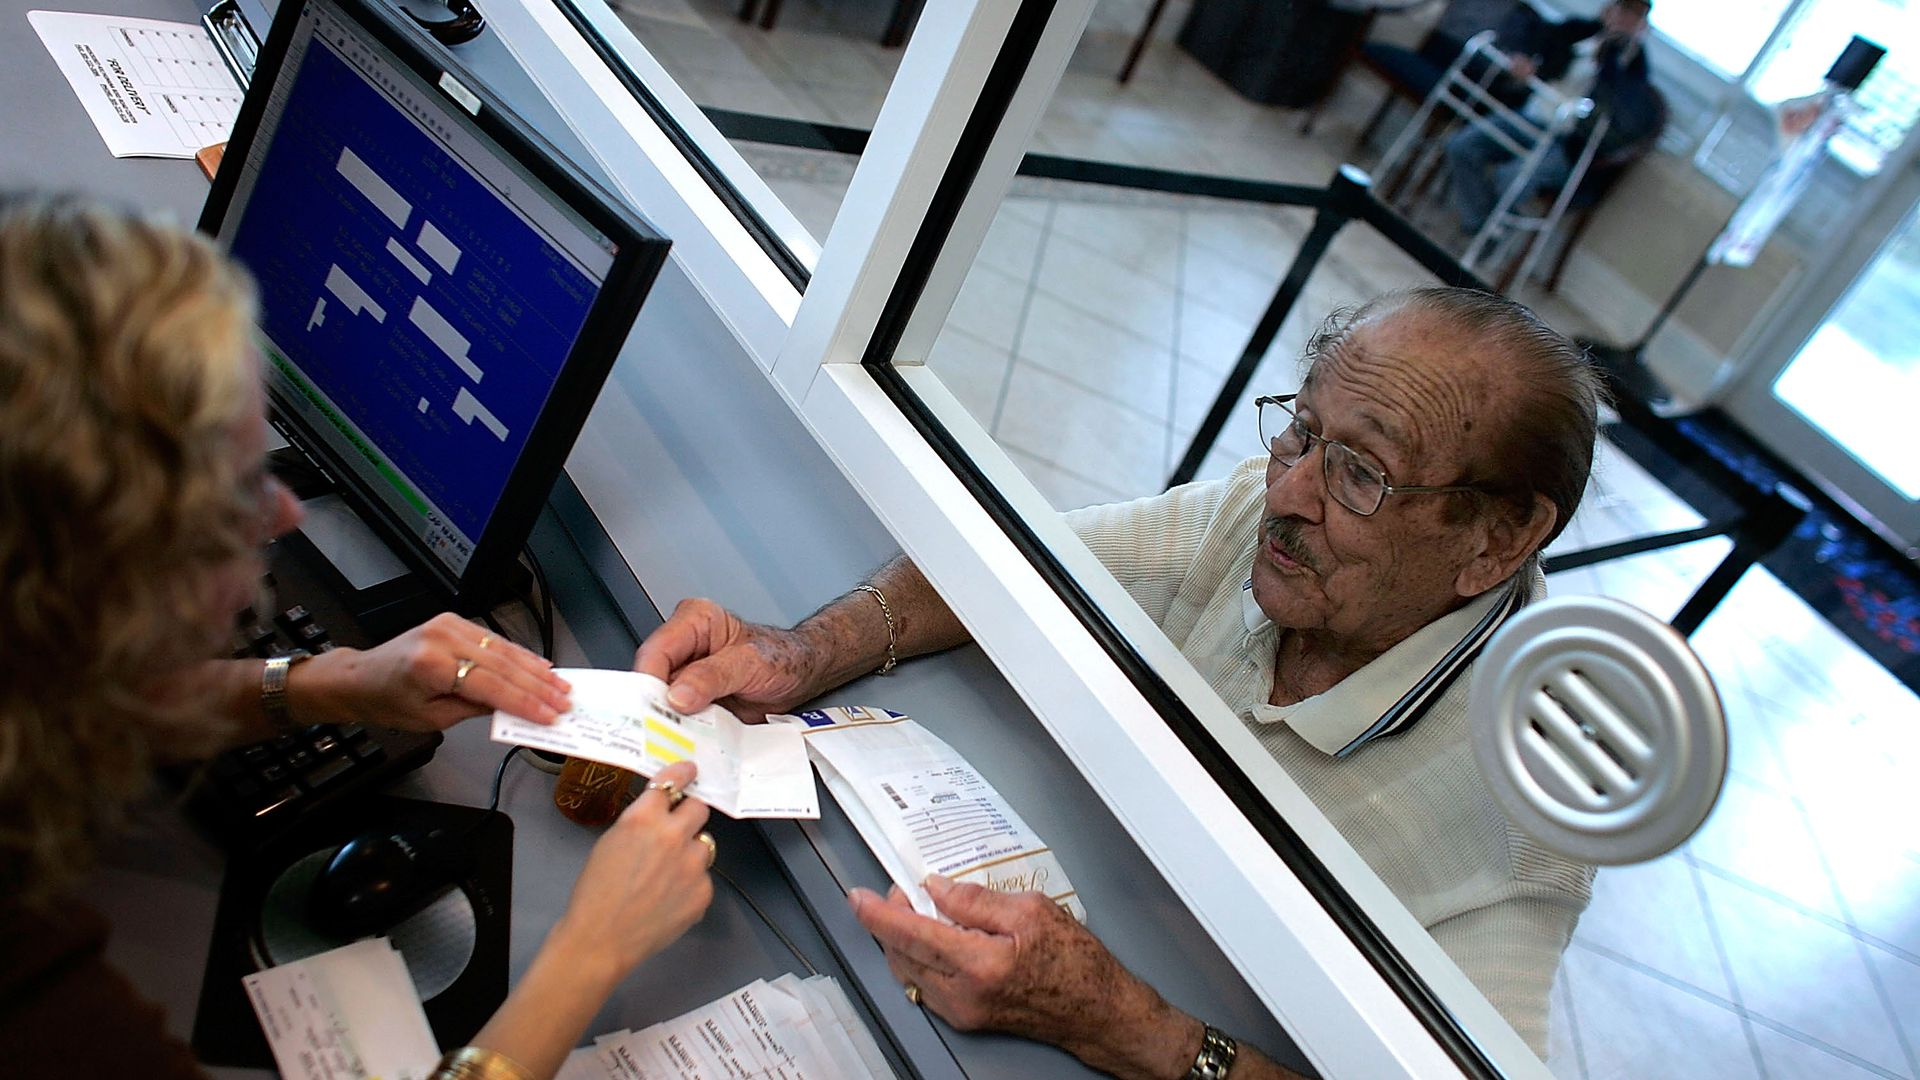 An older man grabs his prescription drugs at a pharmacy counter.